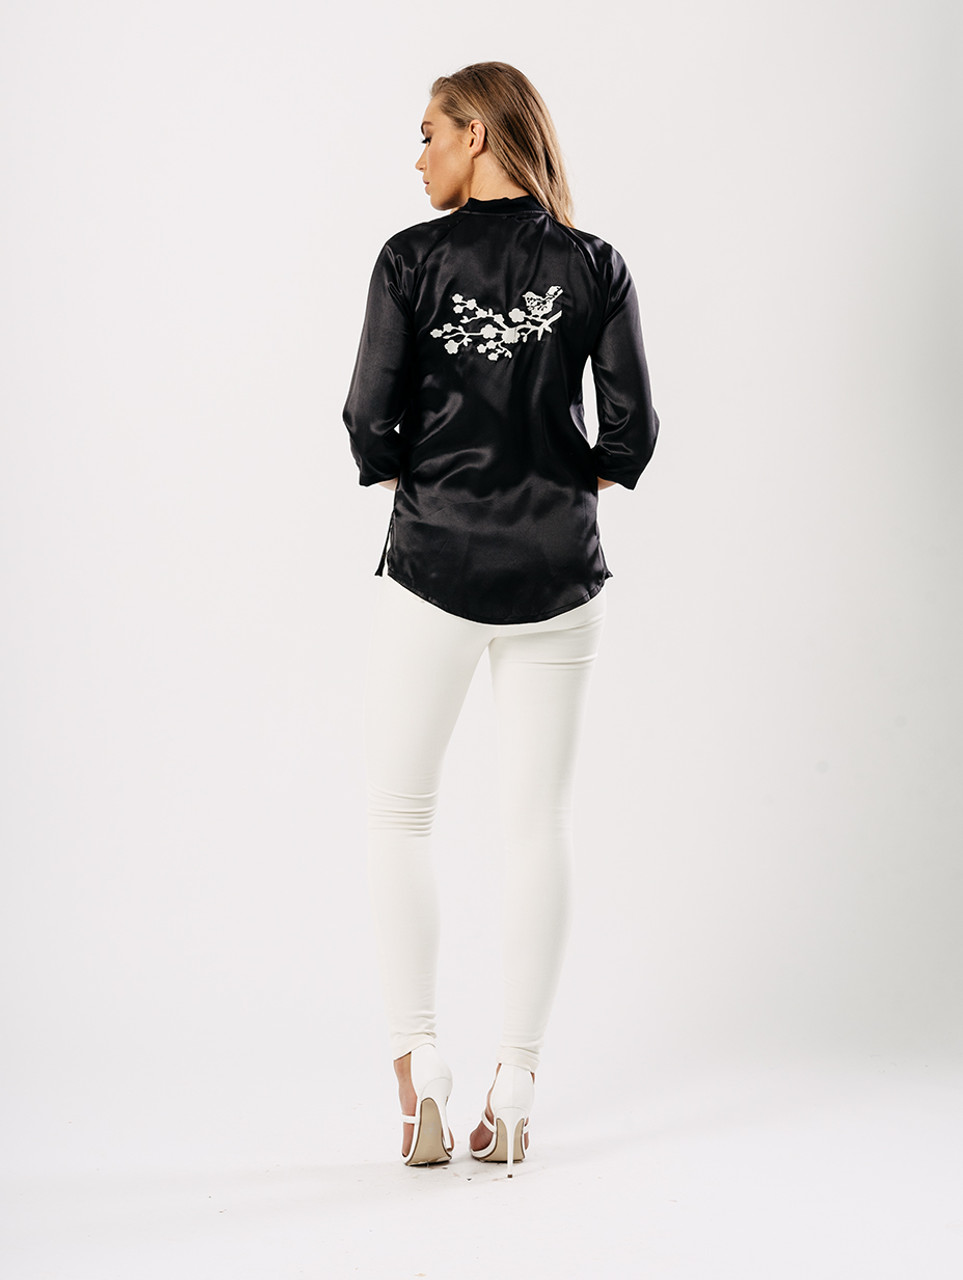 Black Satin Floral Embroidered Back Bomber Style Top